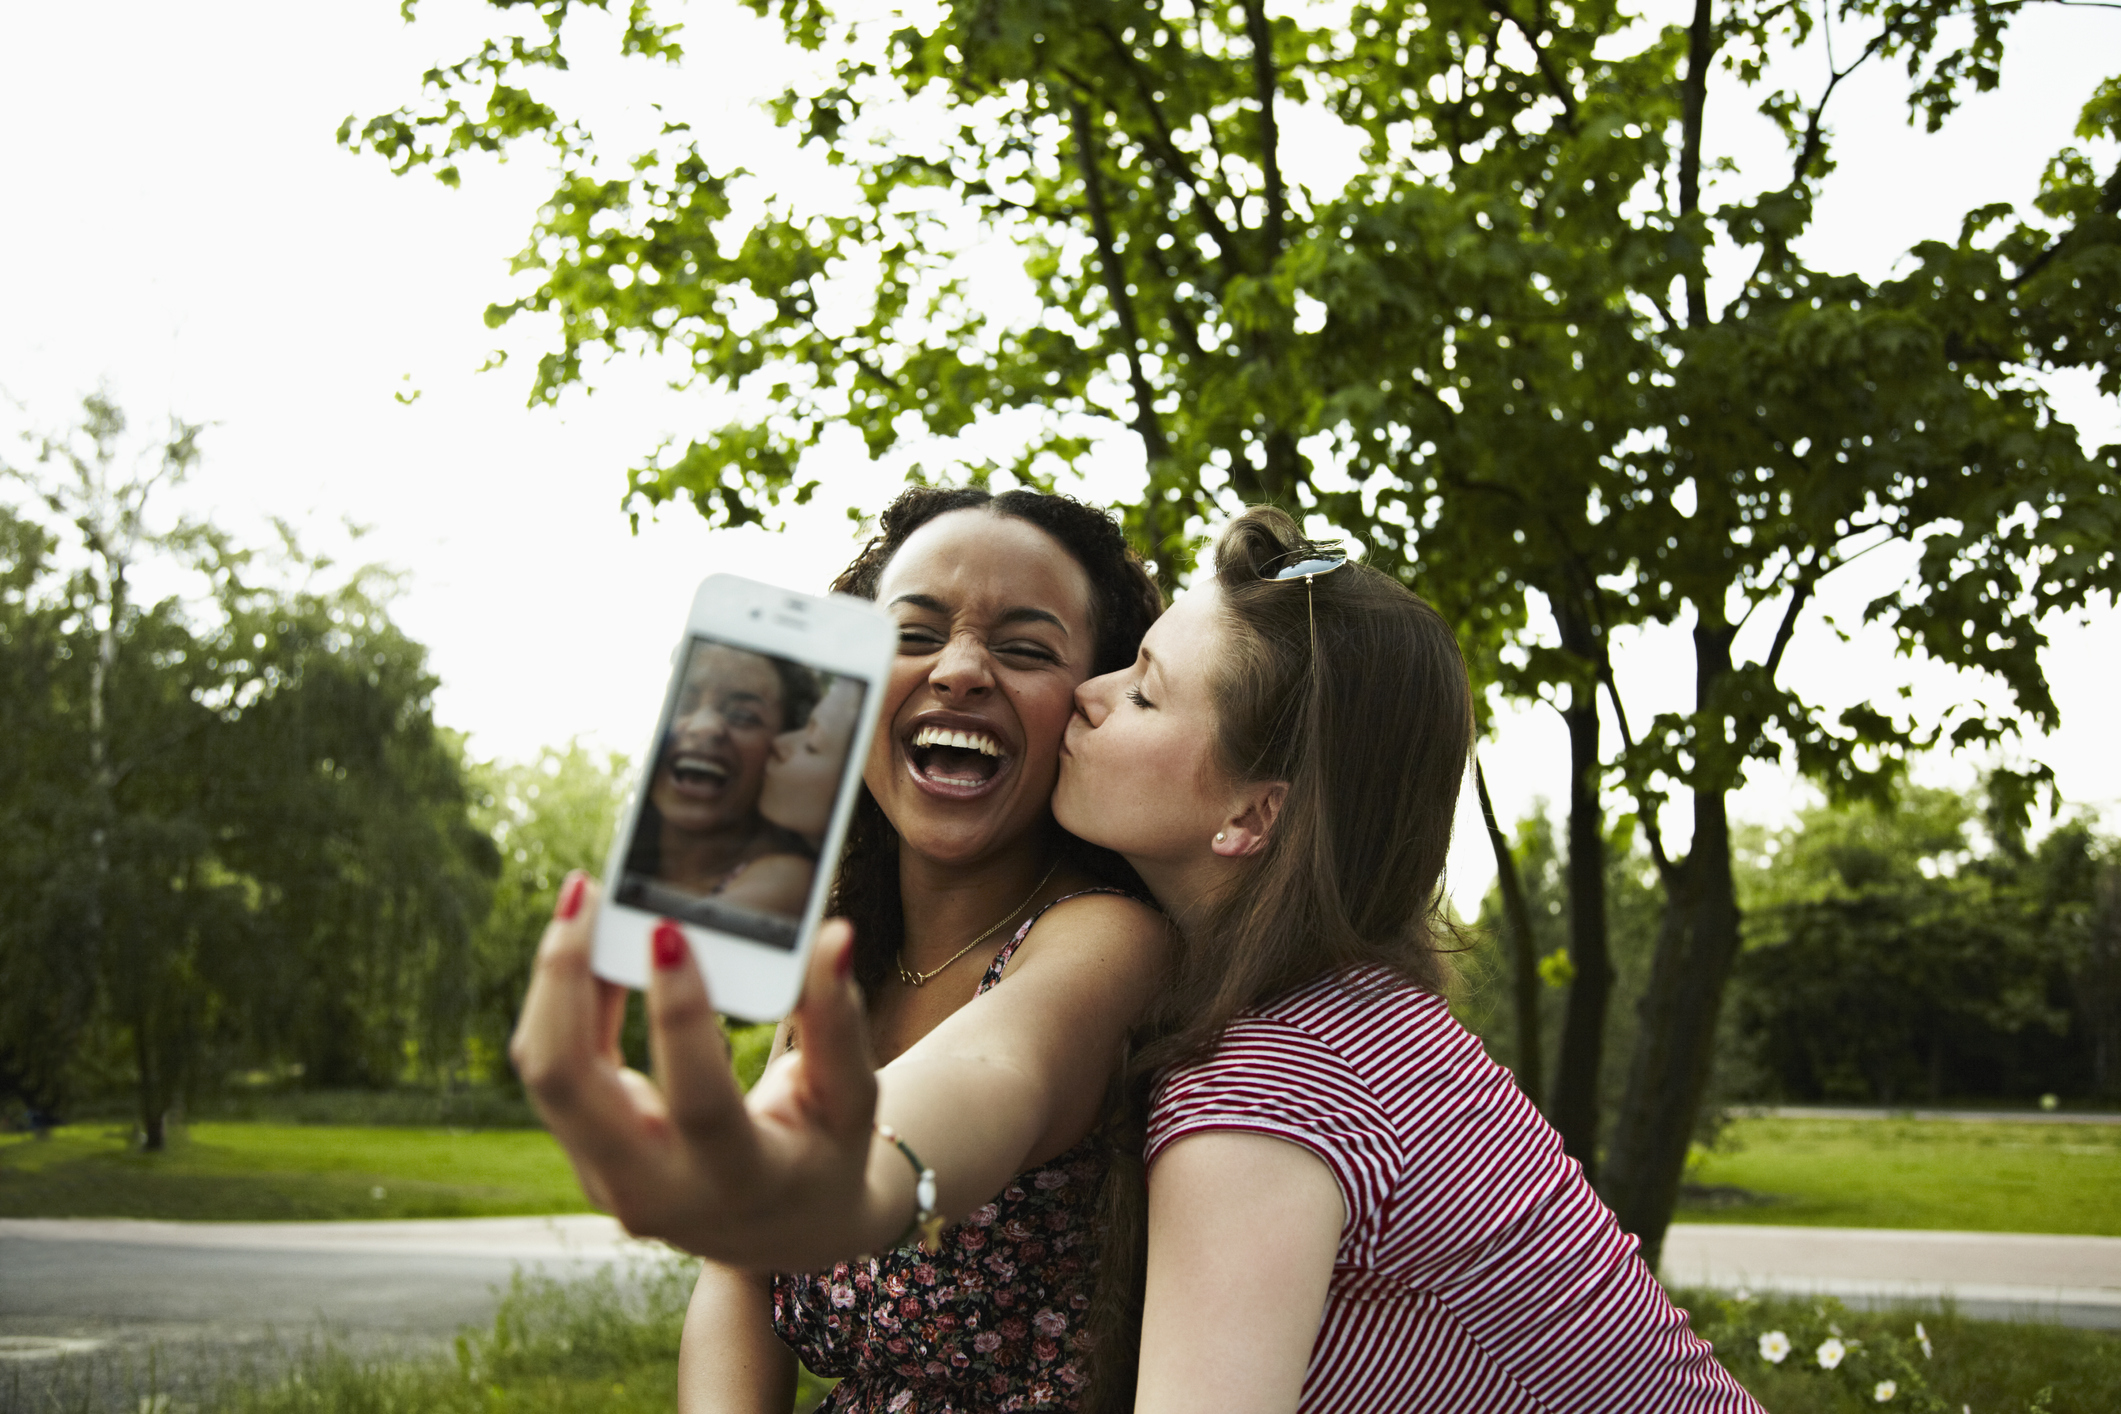 two young adult woman taking a self-portrait with a mobile phone and fooling around making faces.